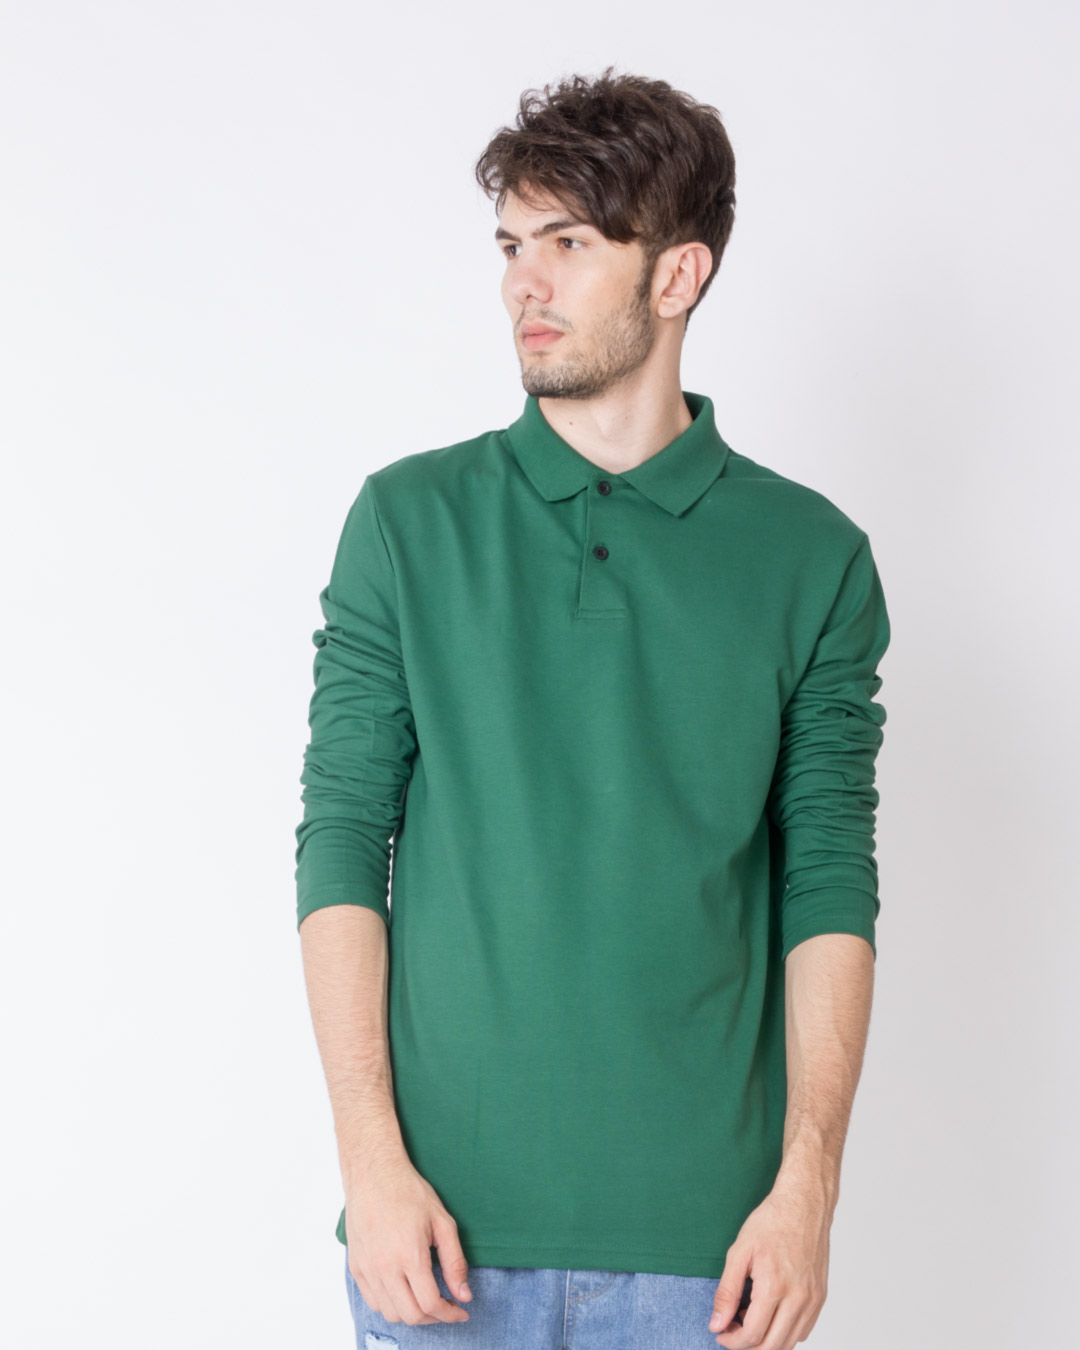 Amazon green full sleeve pique polo t shirts amazon for Full sleeves t shirts for men